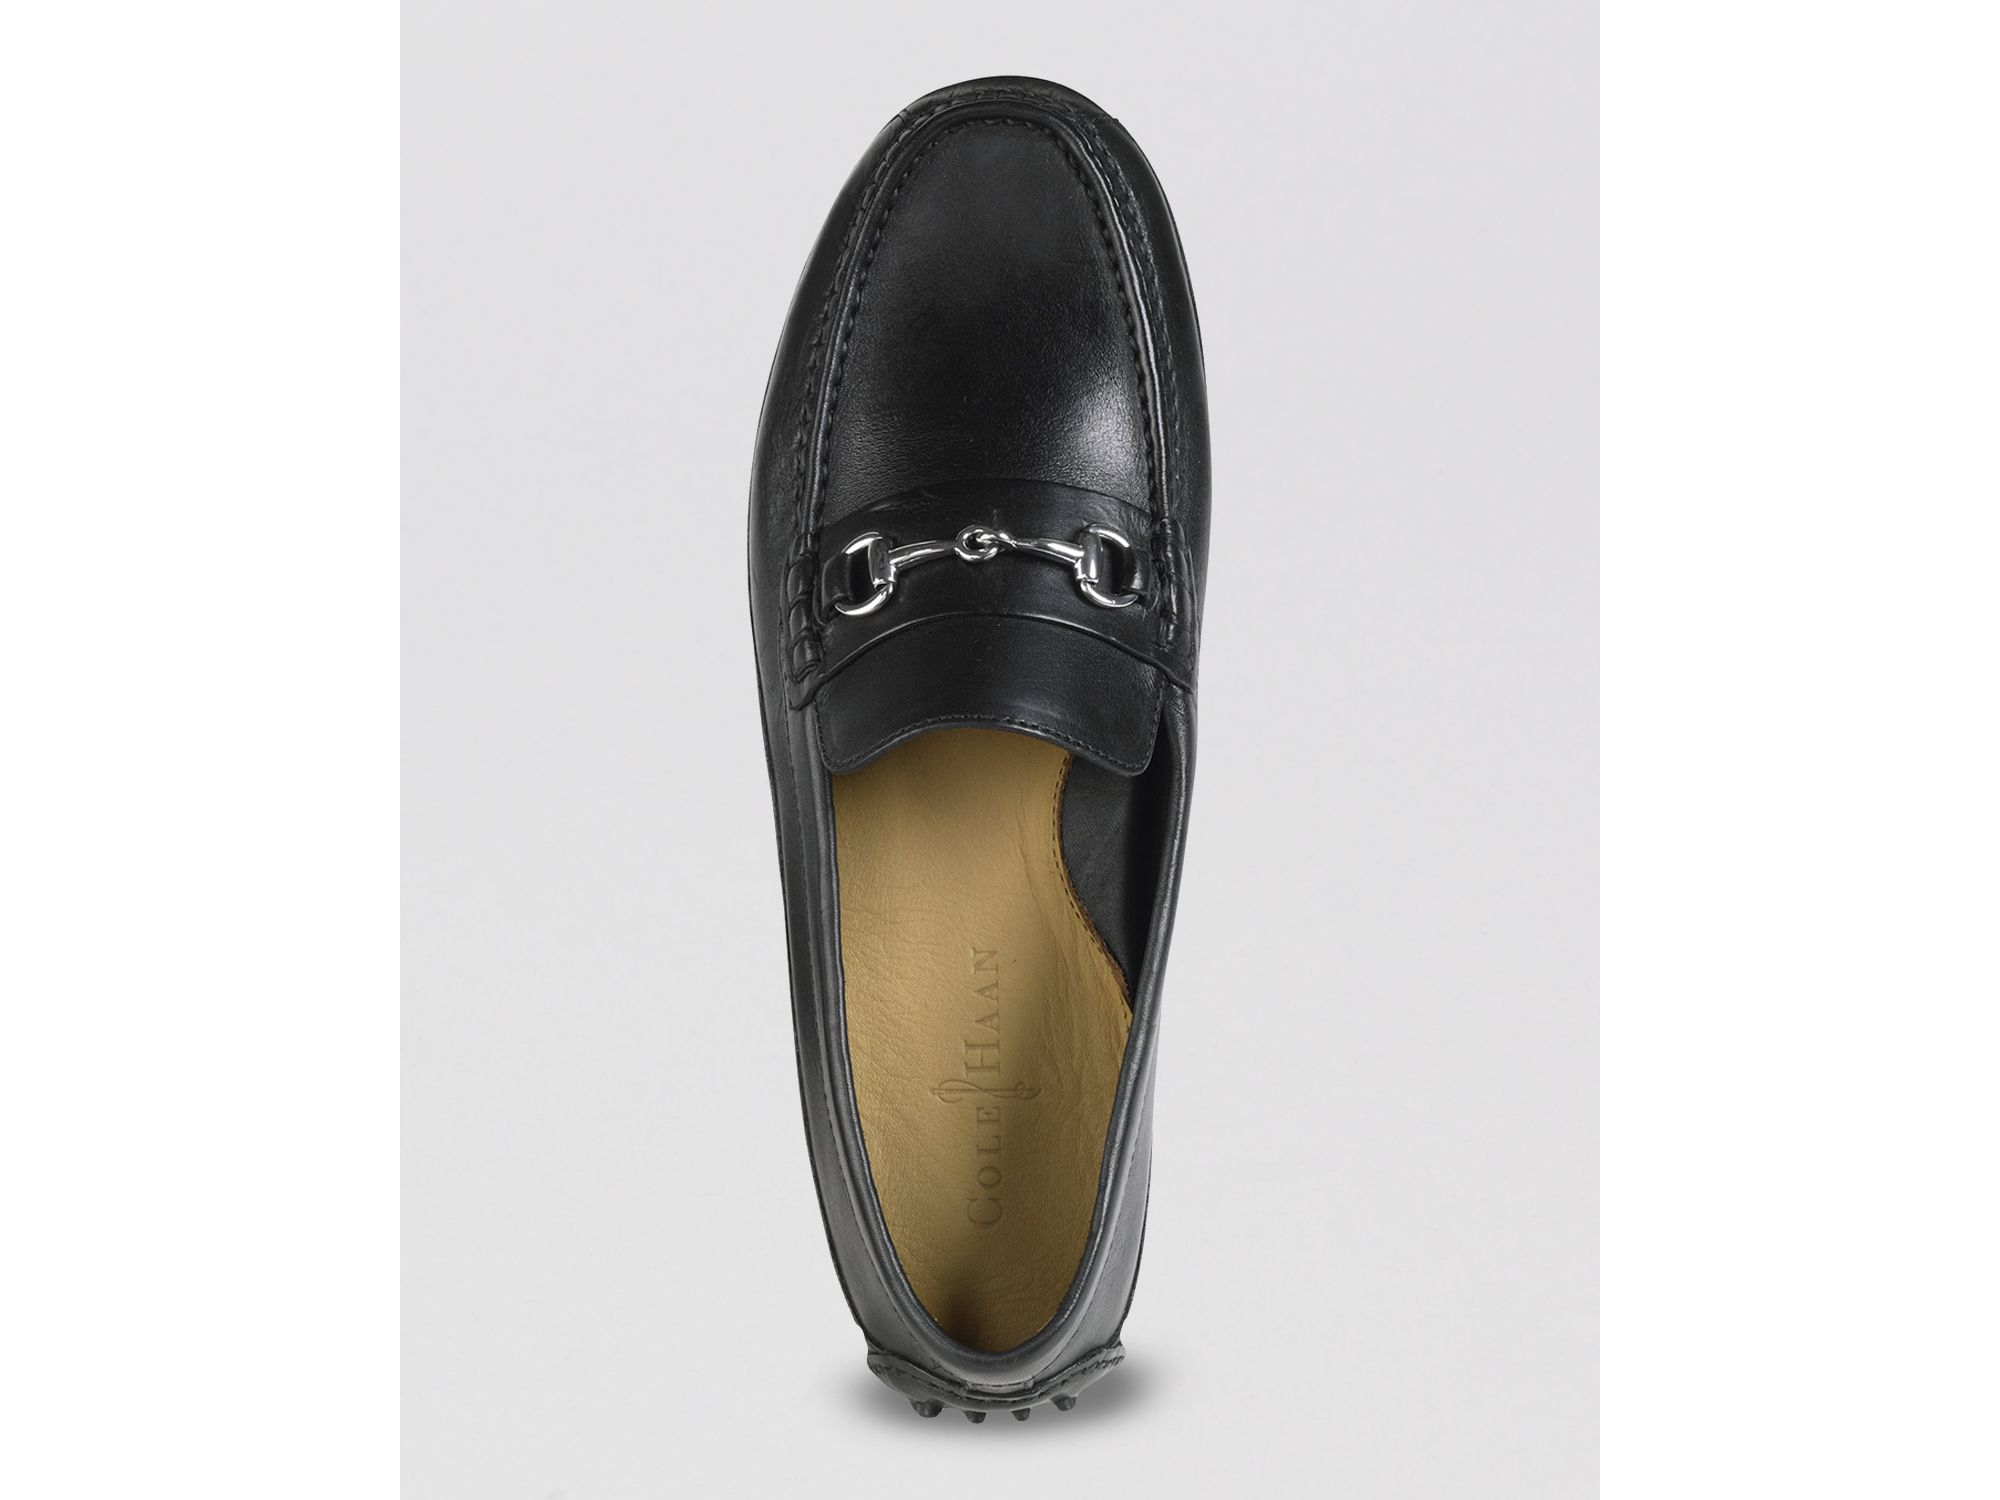 3d84bf631 Lyst - Cole Haan Grant Canoe Bit Driving Loafers in Black for Men